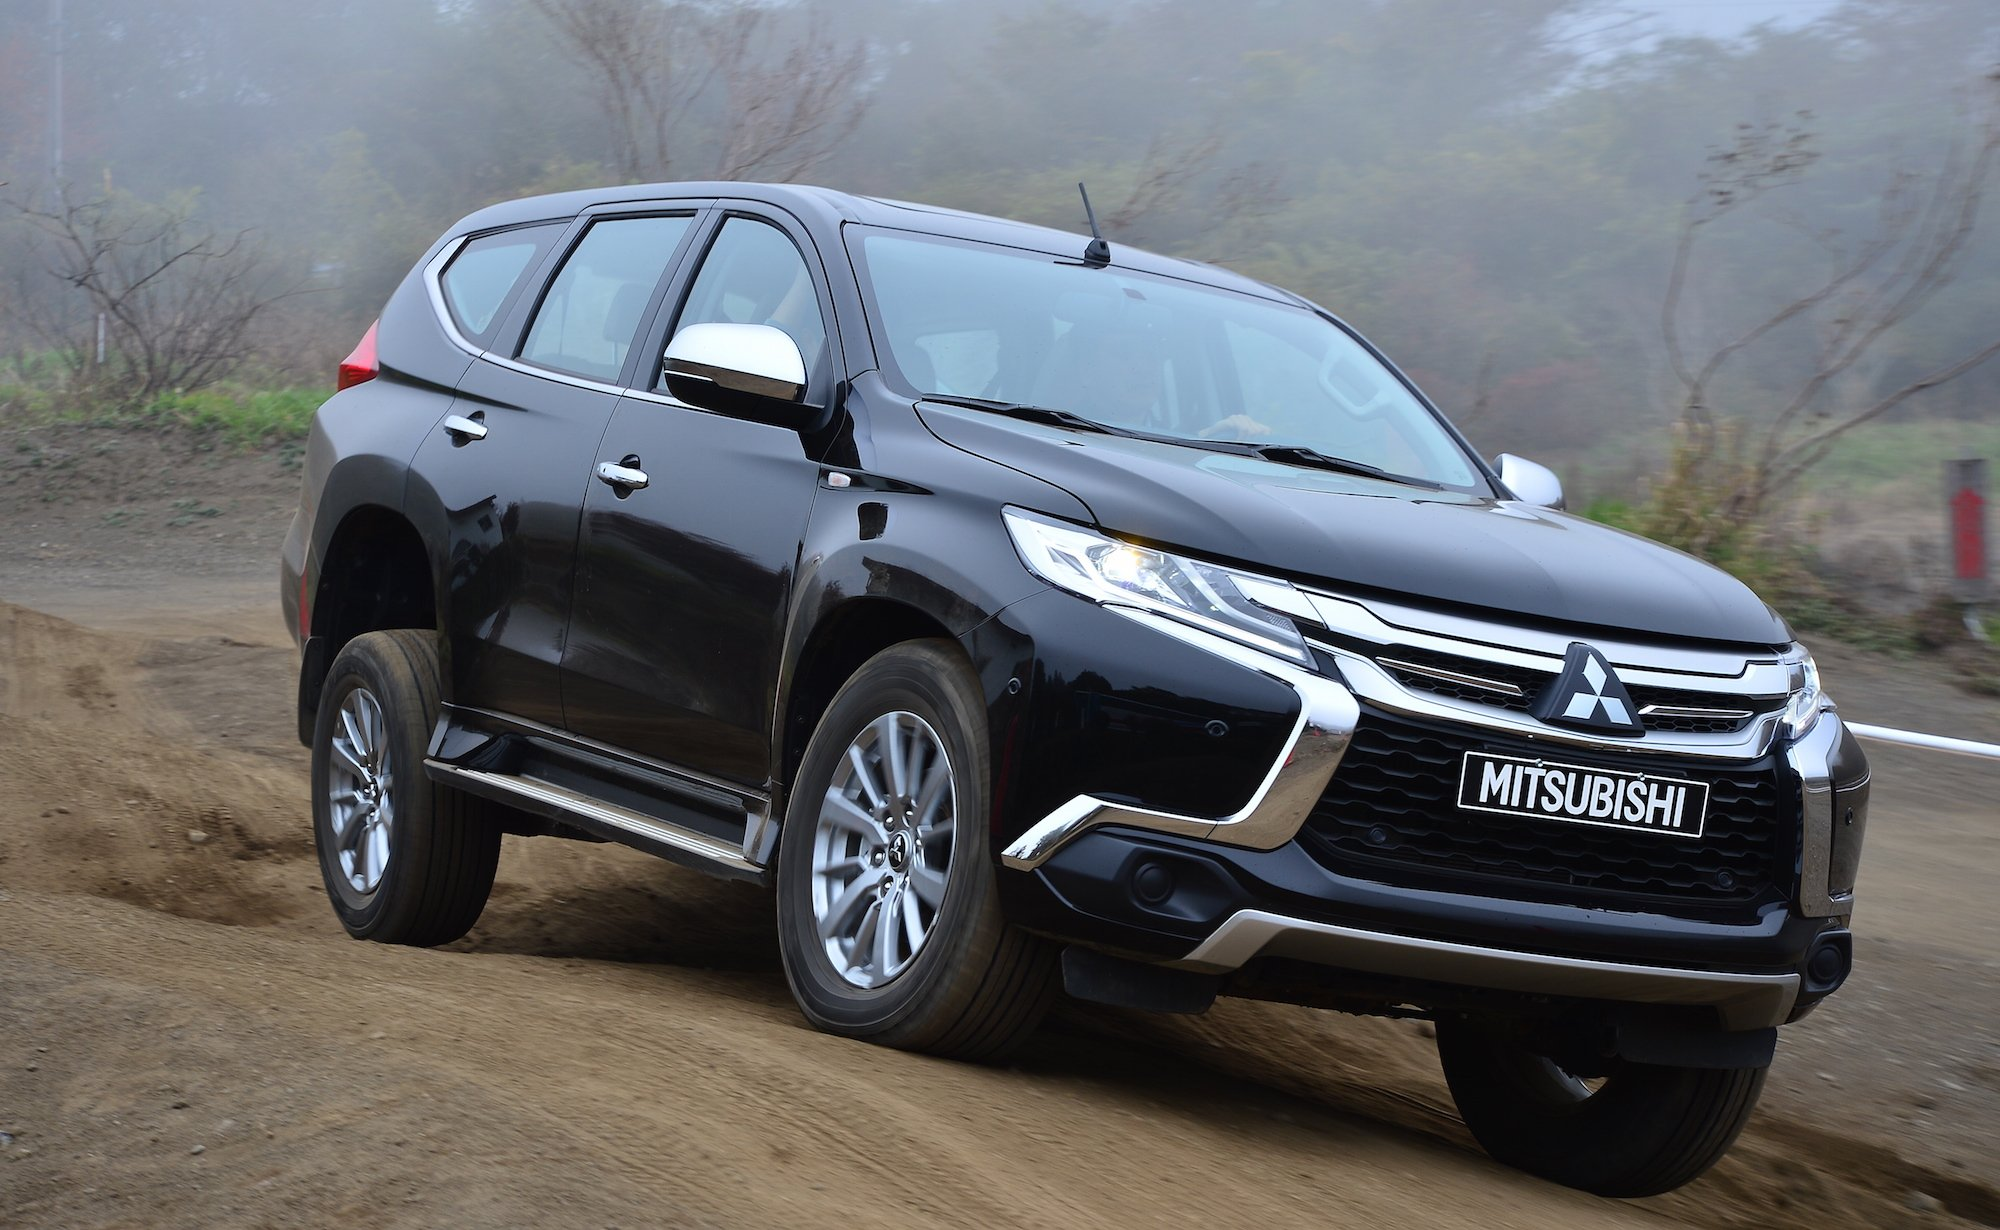 Mitsubishi Pajero Sport Review: Quick drive - photos ...